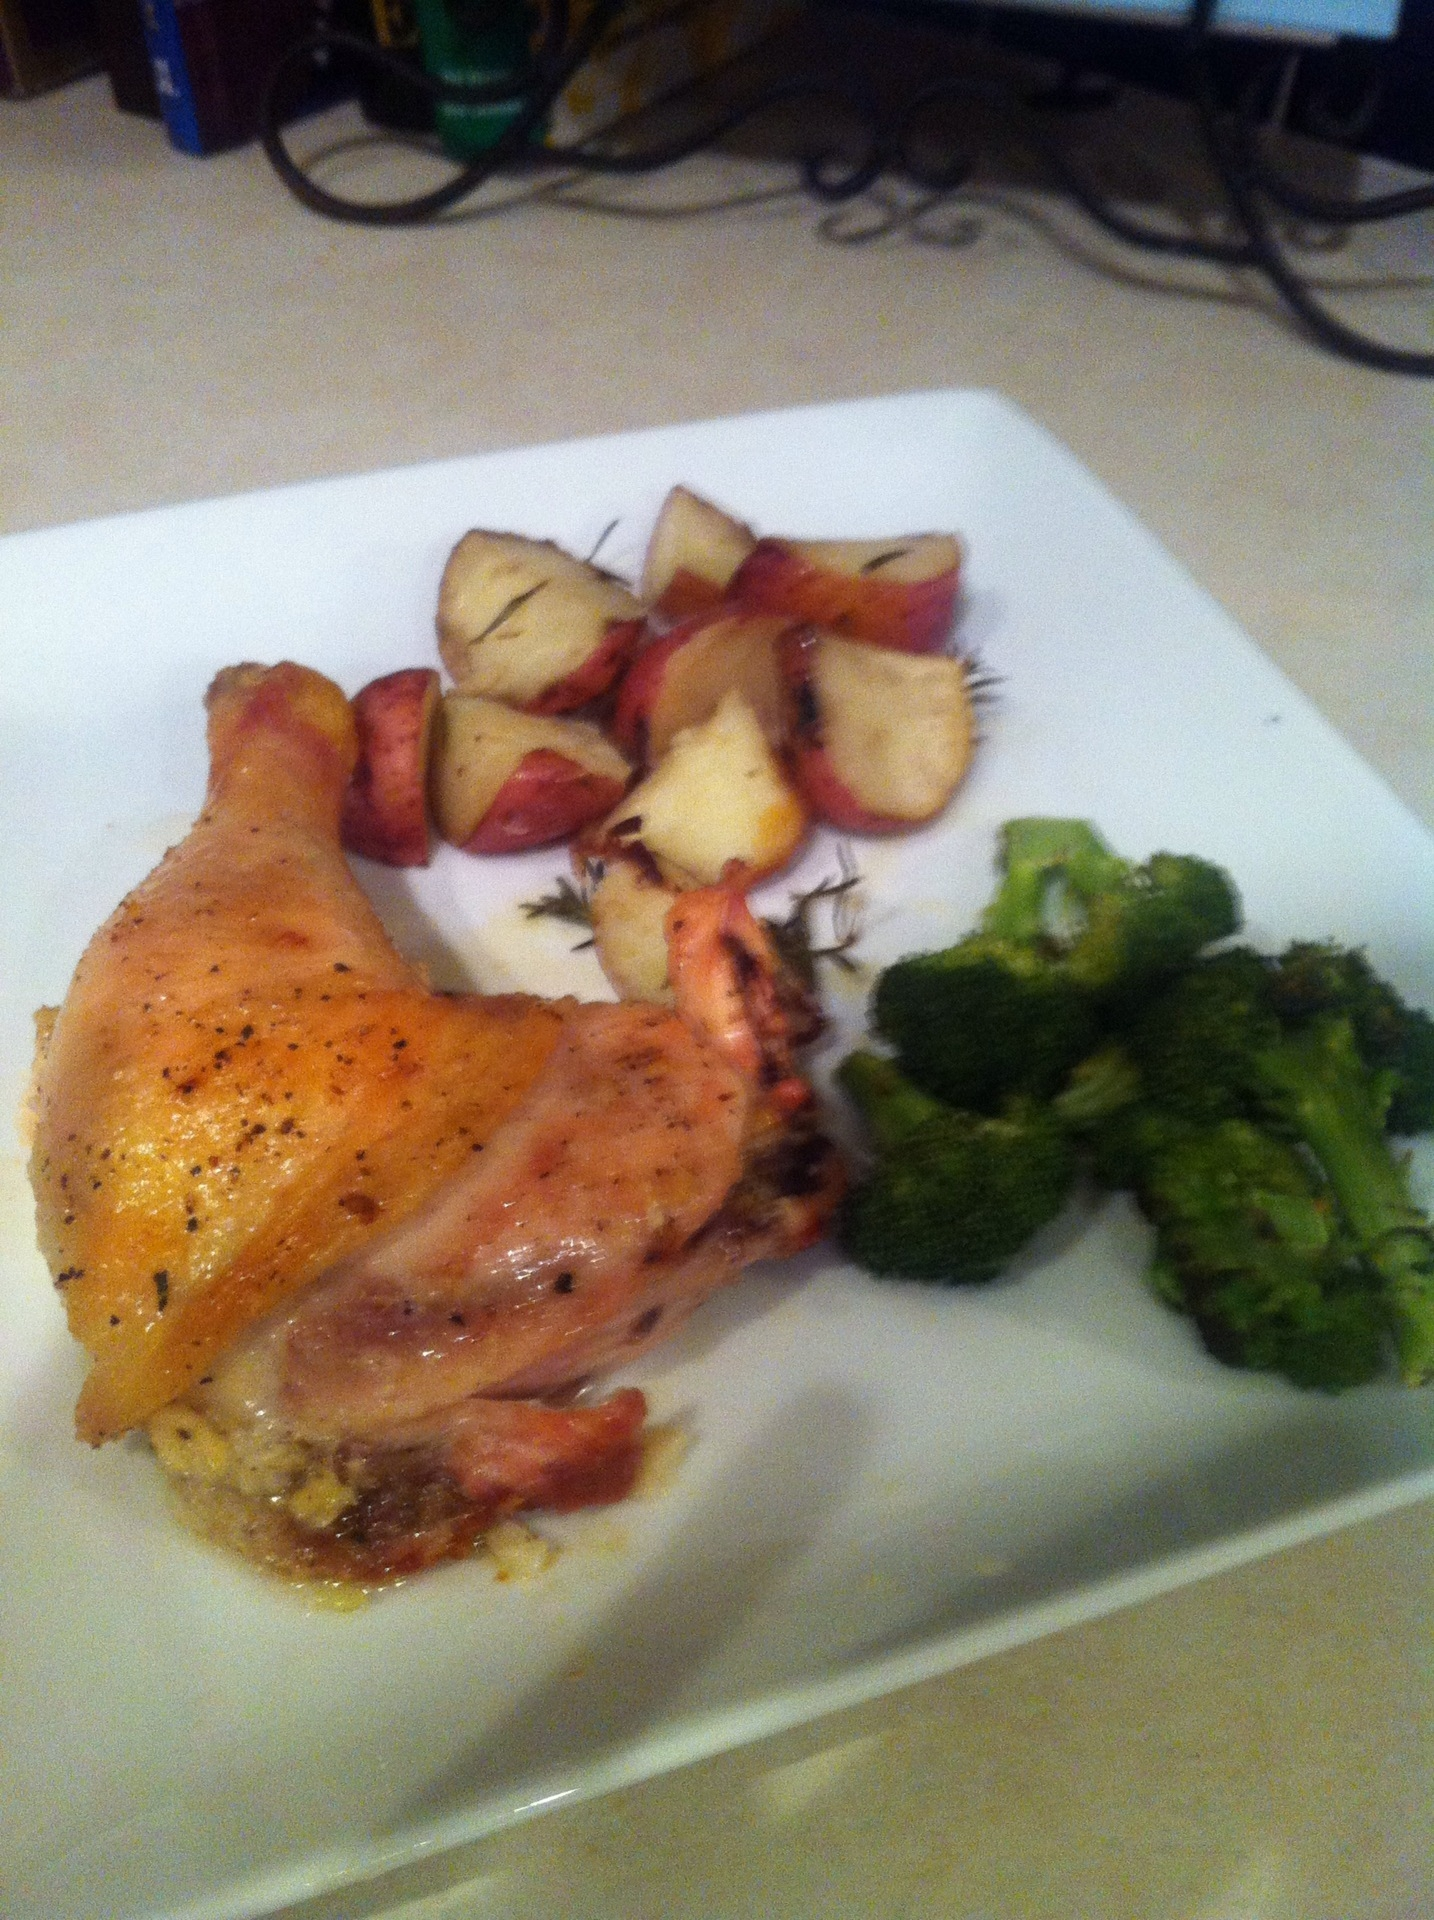 ... and Garlic Baked Chicken with Rosemary Potatoes and Roasted Broccoli